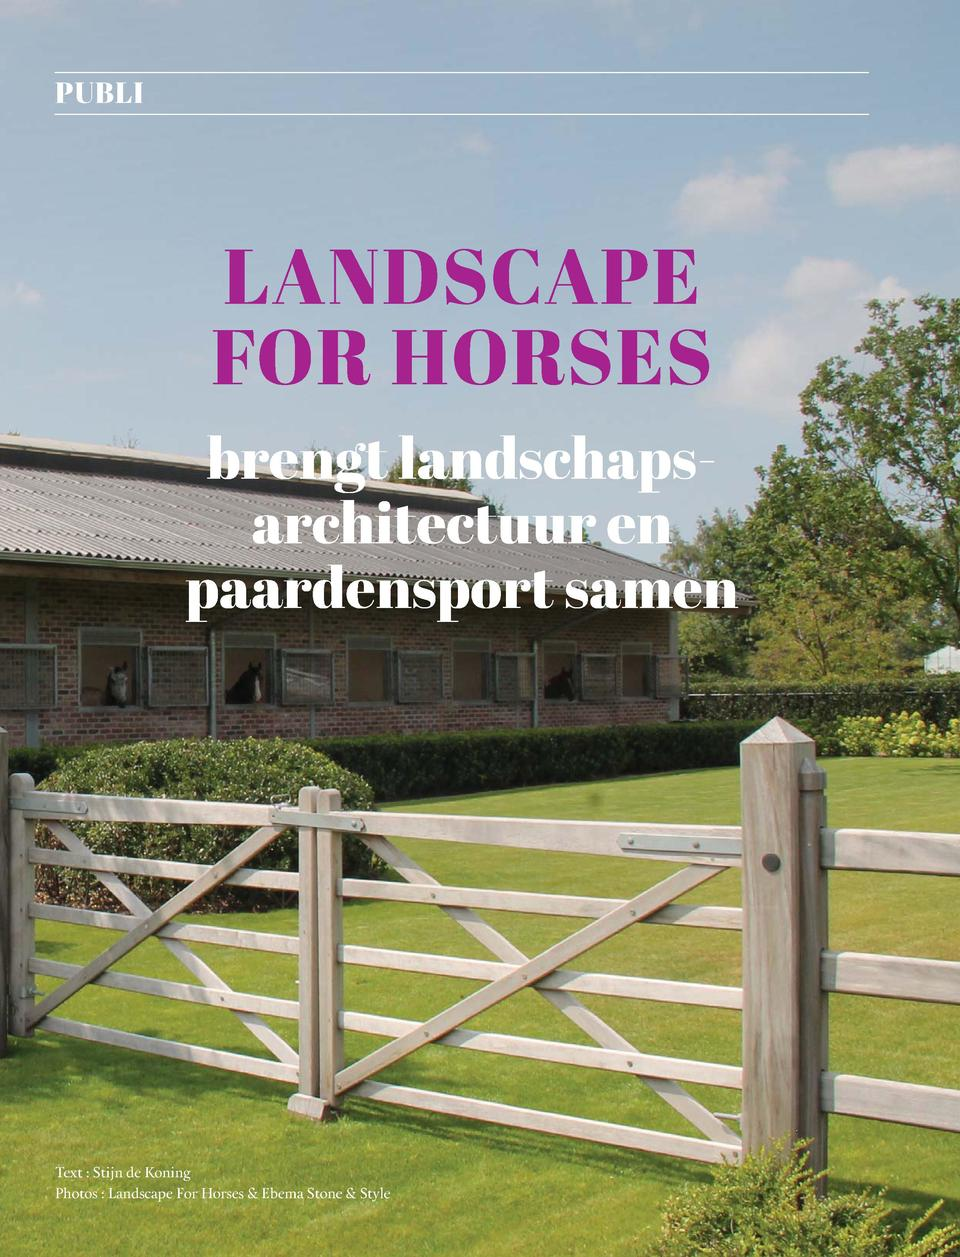 156  PUBLI  LANDSCAPE FOR HORSES brengt landschapsarchitectuur en paardensport samen  Text   Stijn de Koning Photos   Land...